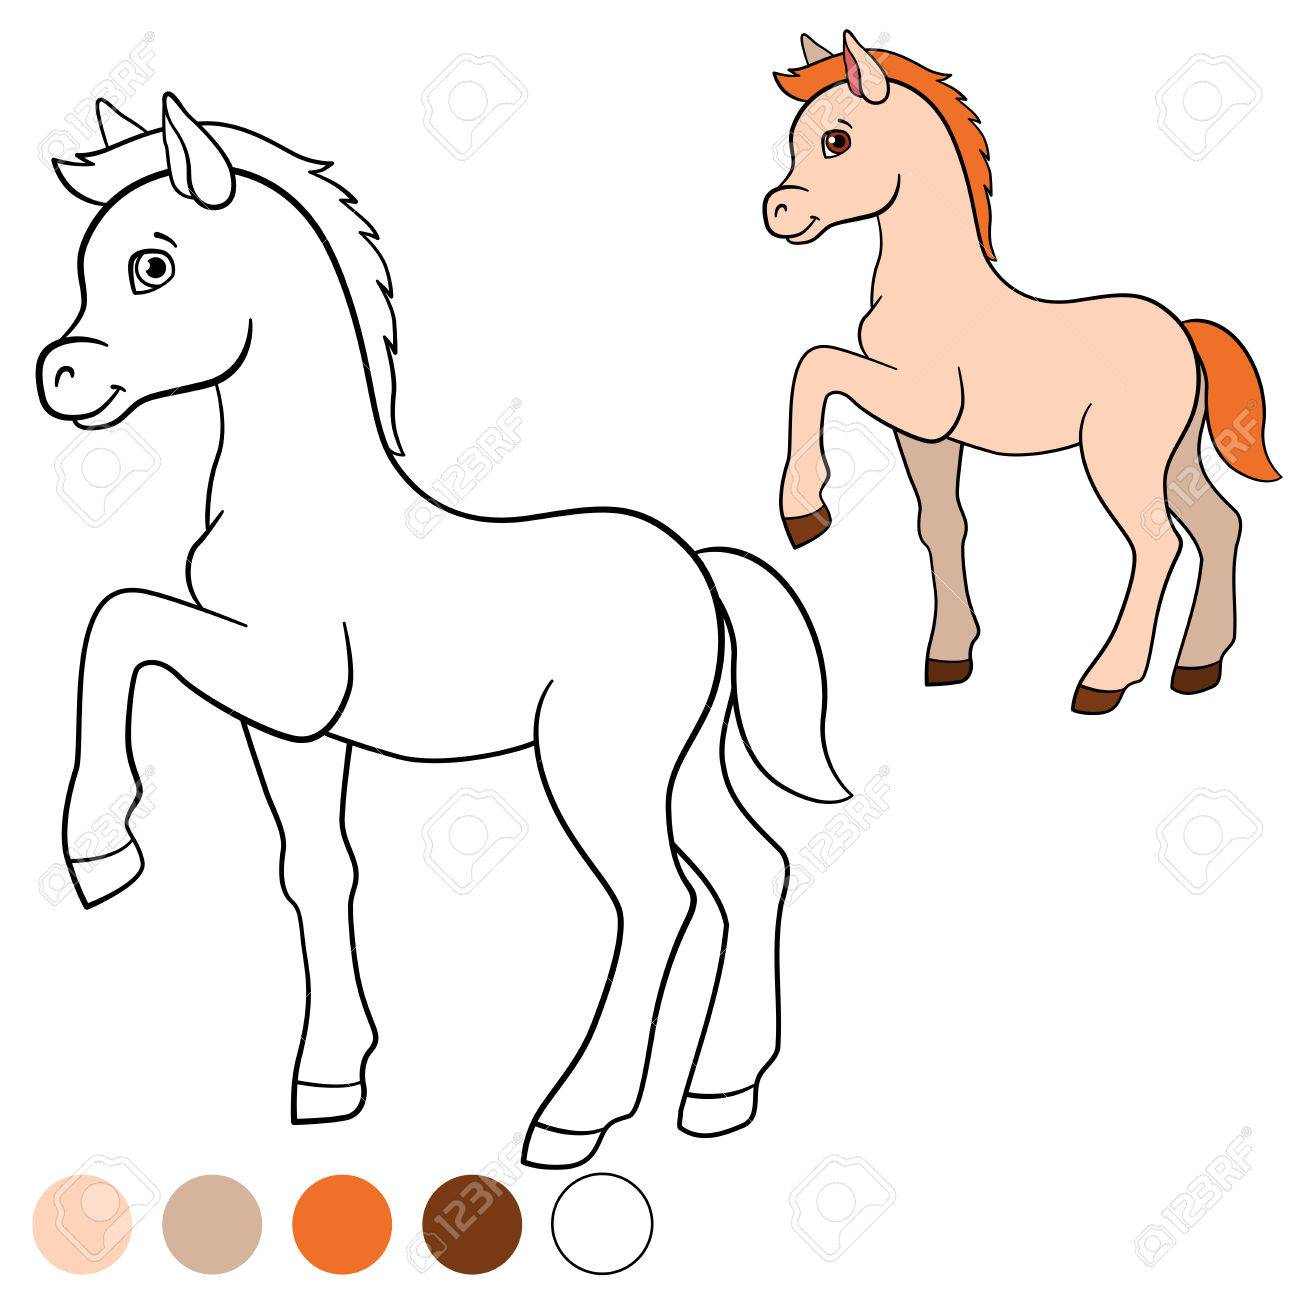 Coloring Page Color Me Horse Little Cute Foal Walks And Smiles Stock